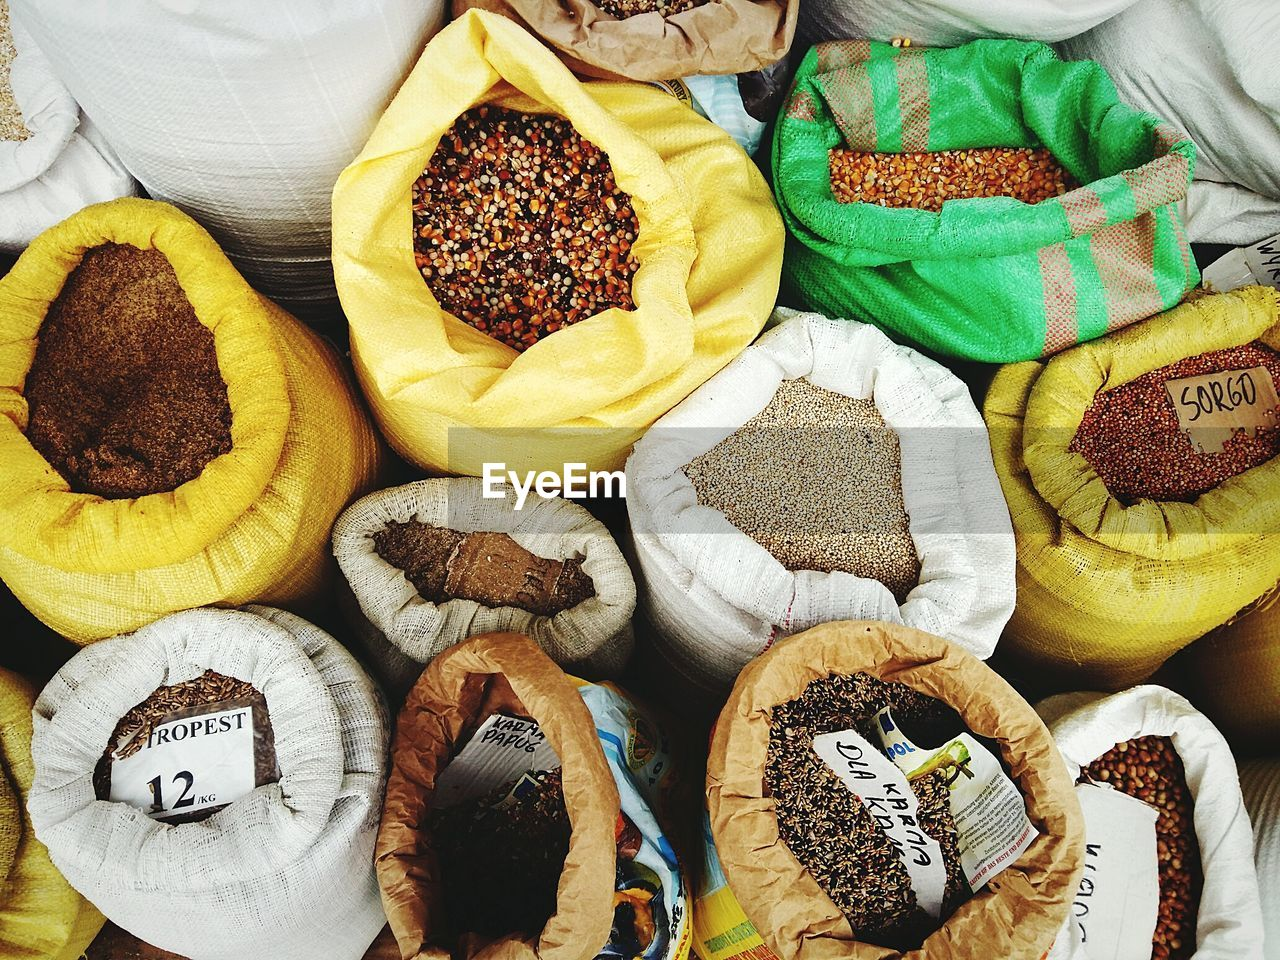 High Angle View Of Grains In Sacks For Sale At Market Stall